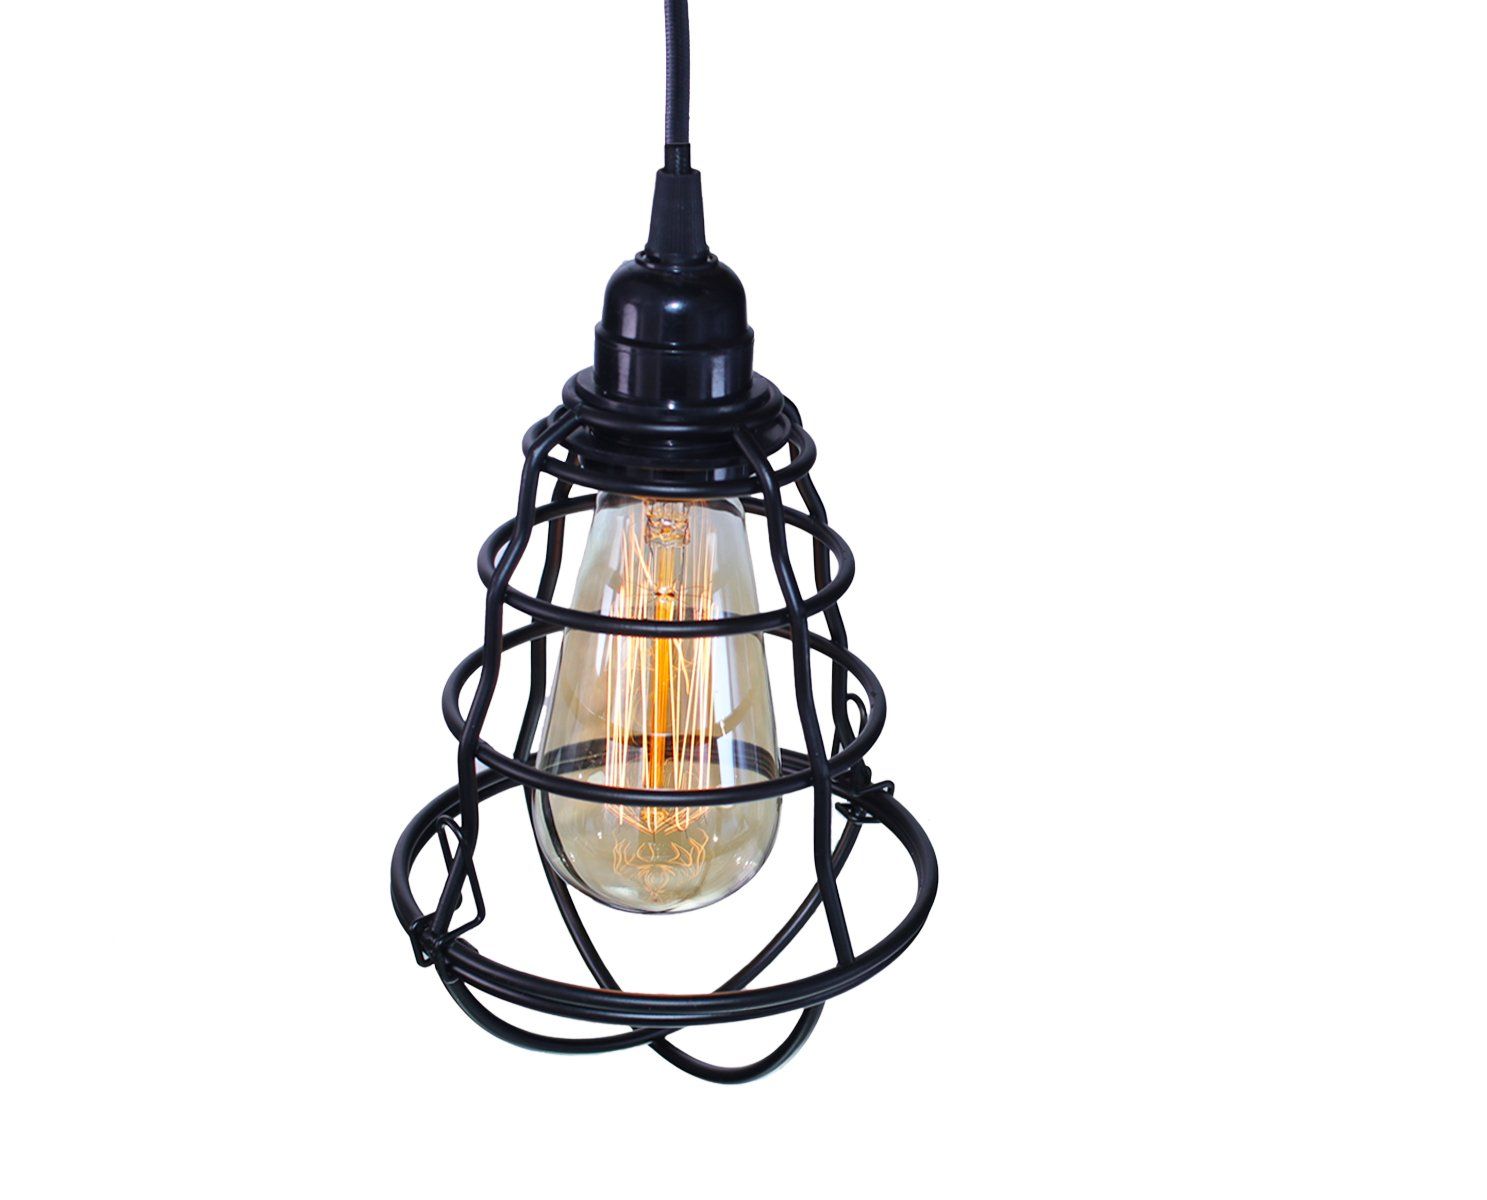 INNOCCY Vintage Edison Hanging Caged Industrial Pendant Light, E26/E27 Mini Pendant Light Vintage Metal Pendant Light Fixture Home Kitchen Pendant Lamp. by INNOCCY